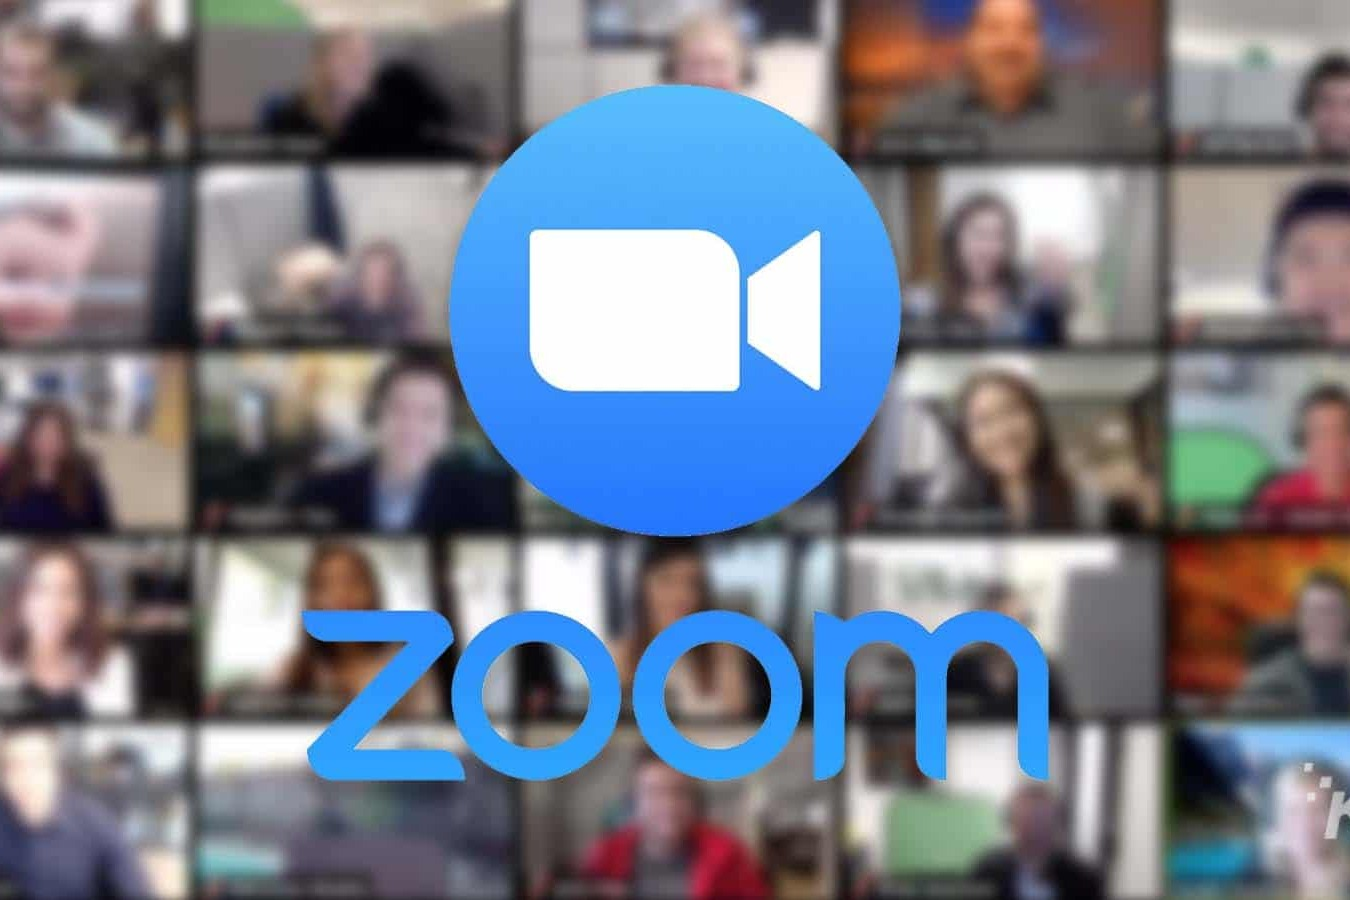 Zoom App gives clarity that they are not Chinese